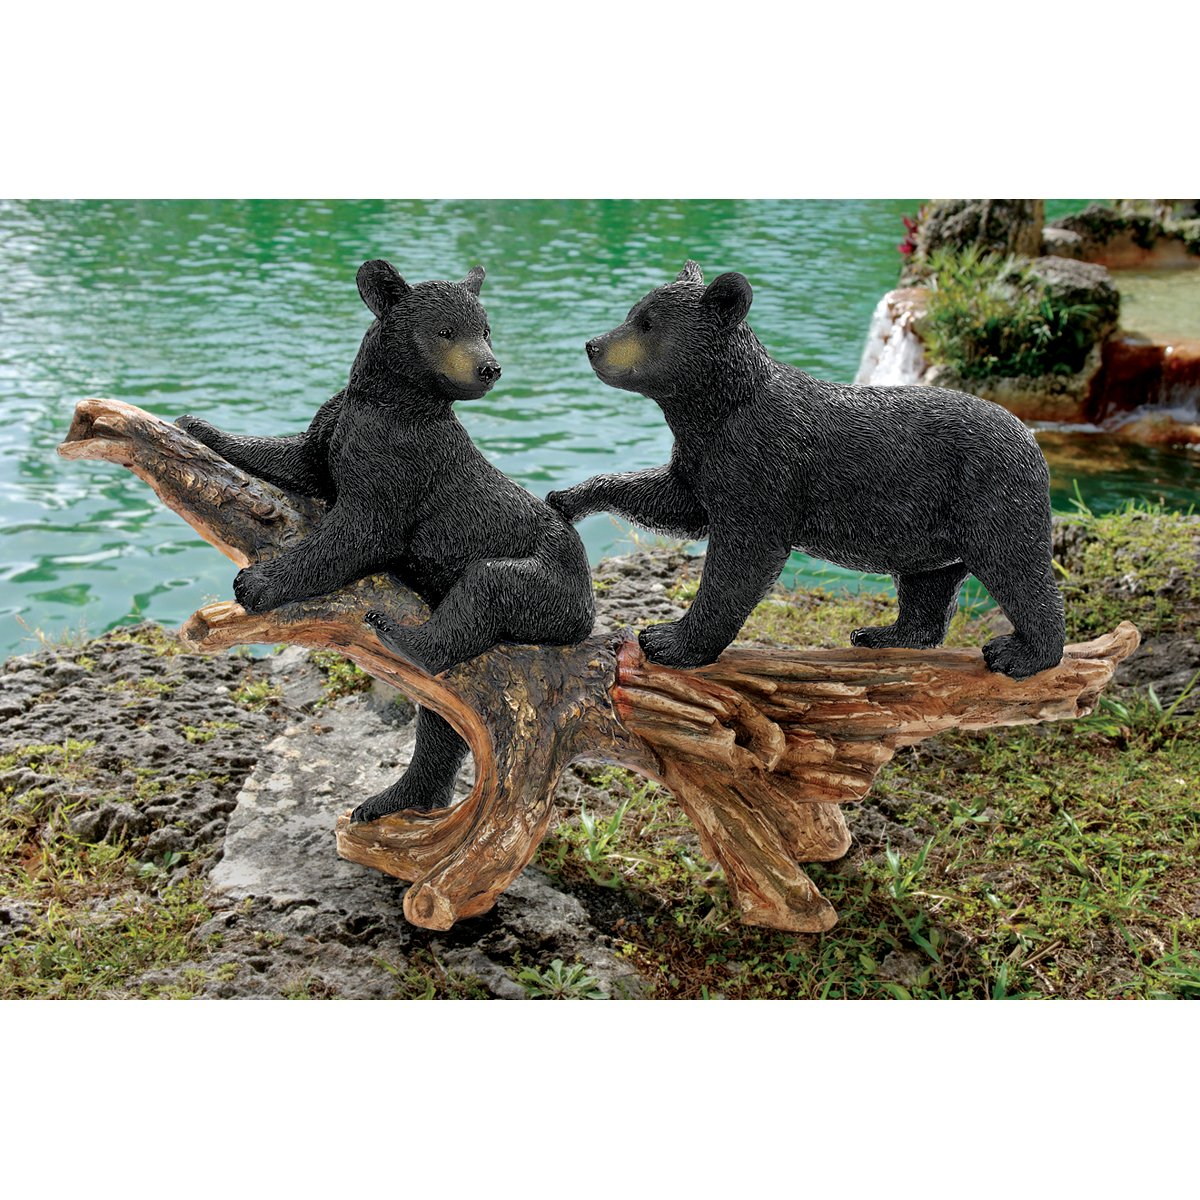 Amazon.com : Design Toscano Mischievous Bear Cubs Sculpture : Outdoor  Statues : Garden U0026 Outdoor